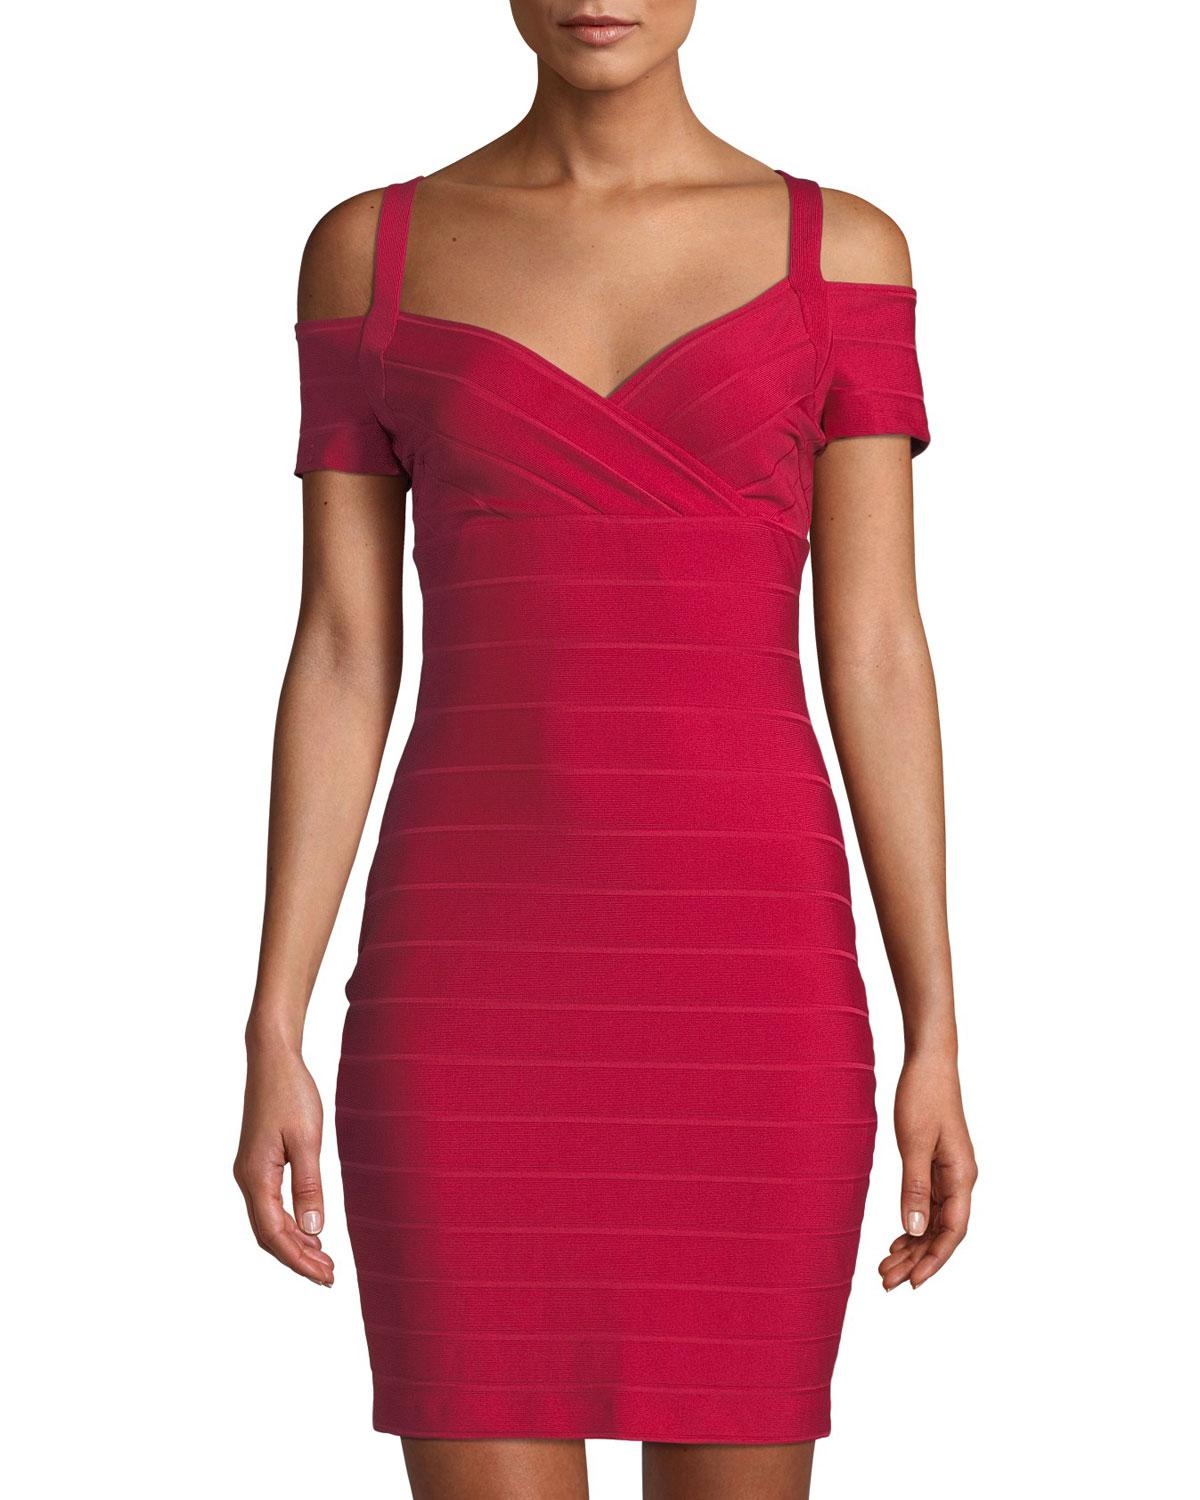 Gal the guess red bodycon dress ancient rome